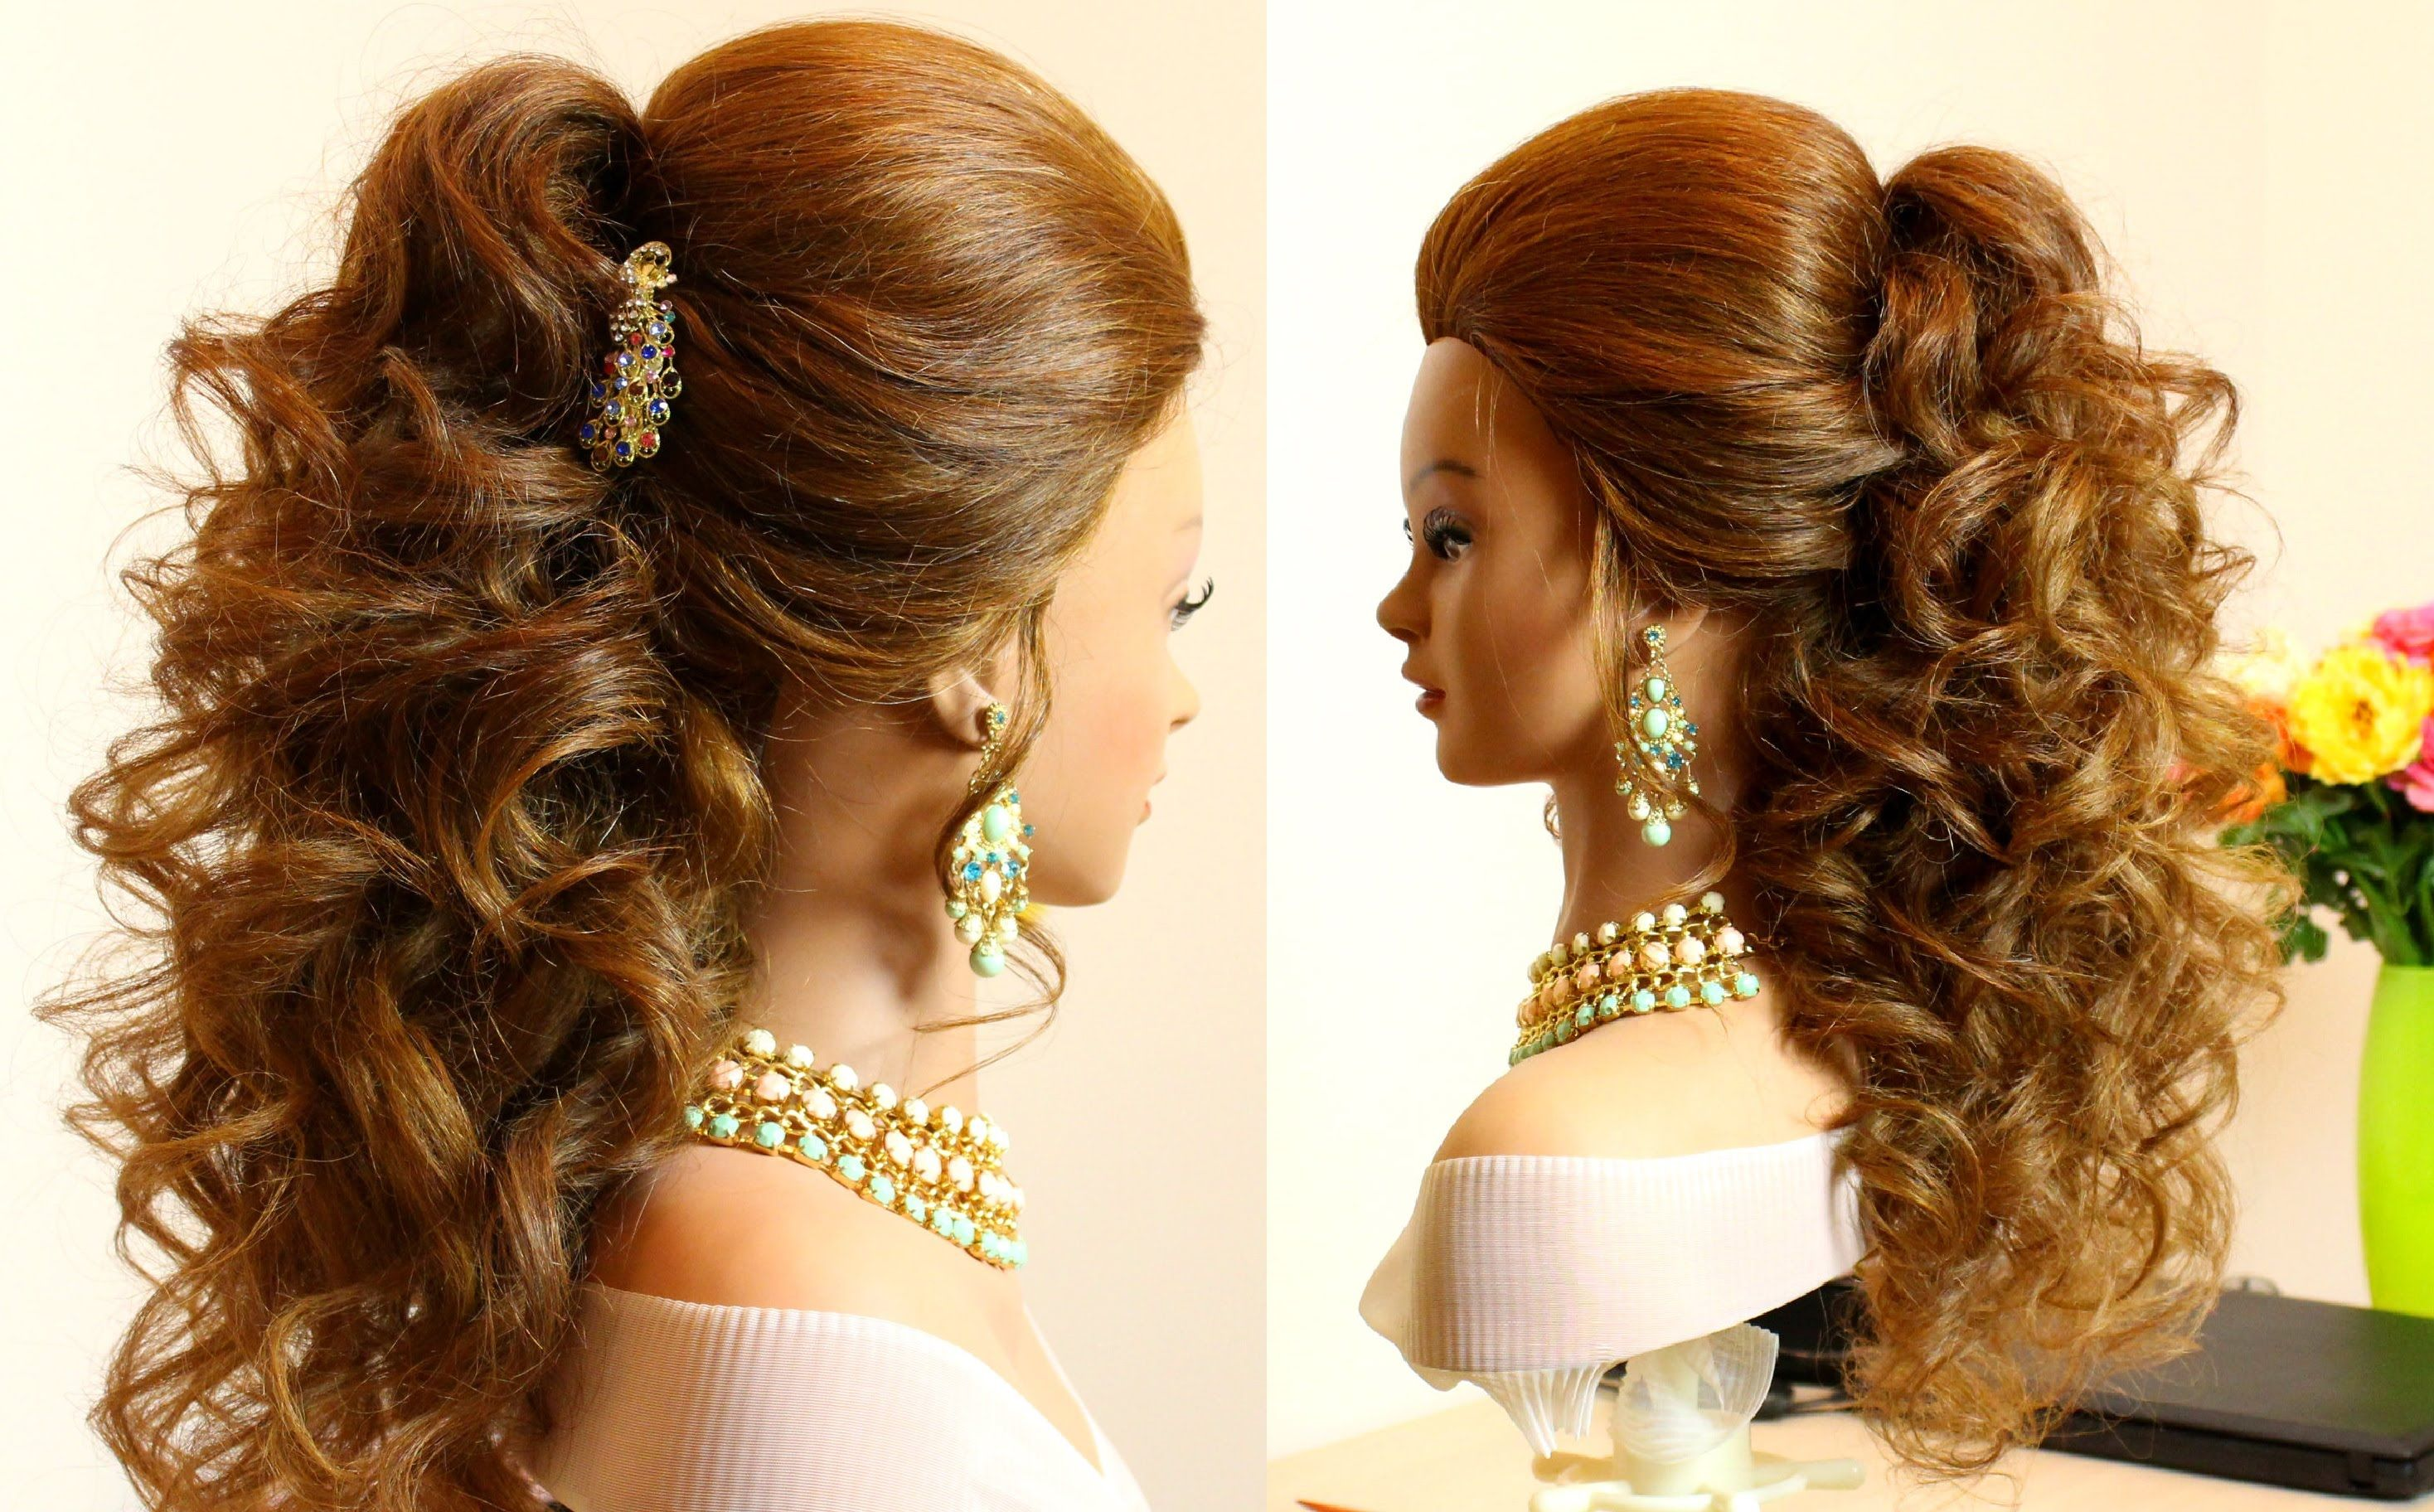 Https Www Youtube Com Watch V Fkjw Gosonm Feature Share Long Hair Tutorial Hair Styles Curls For Long Hair